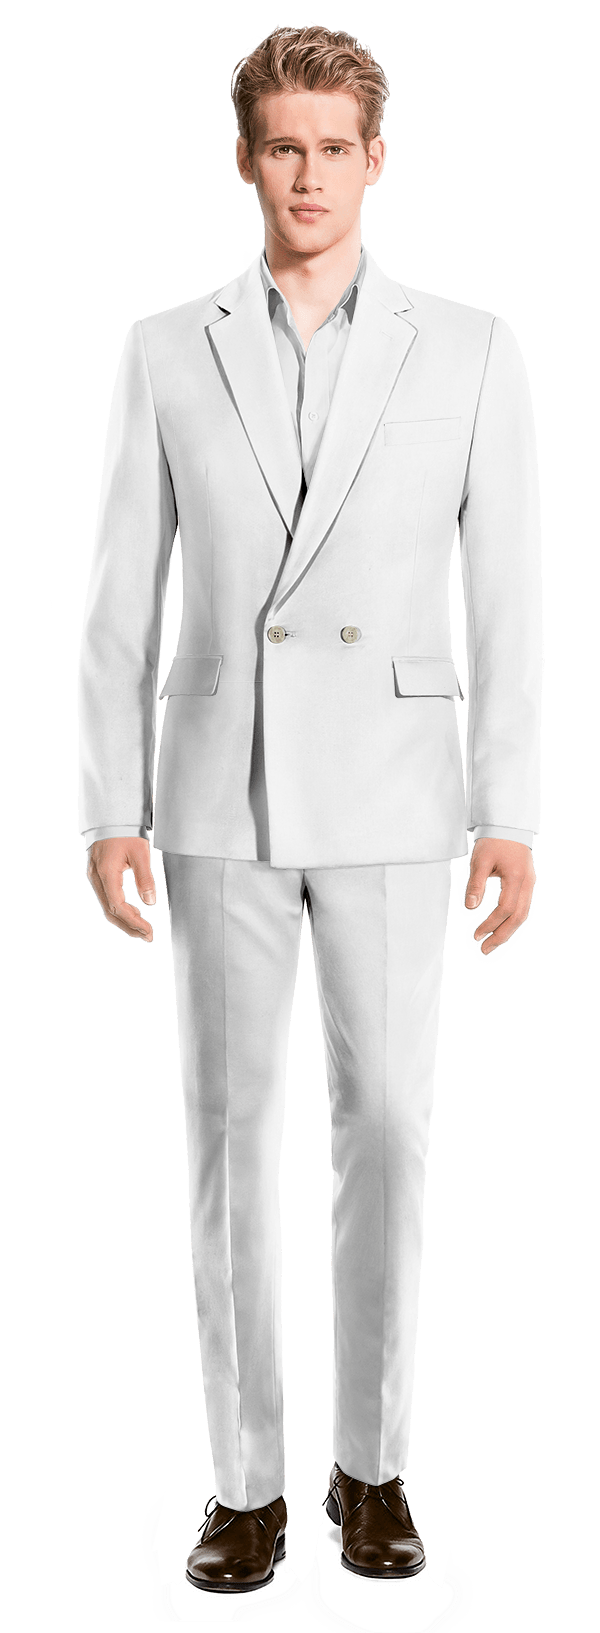 White Linen Shirts For Men